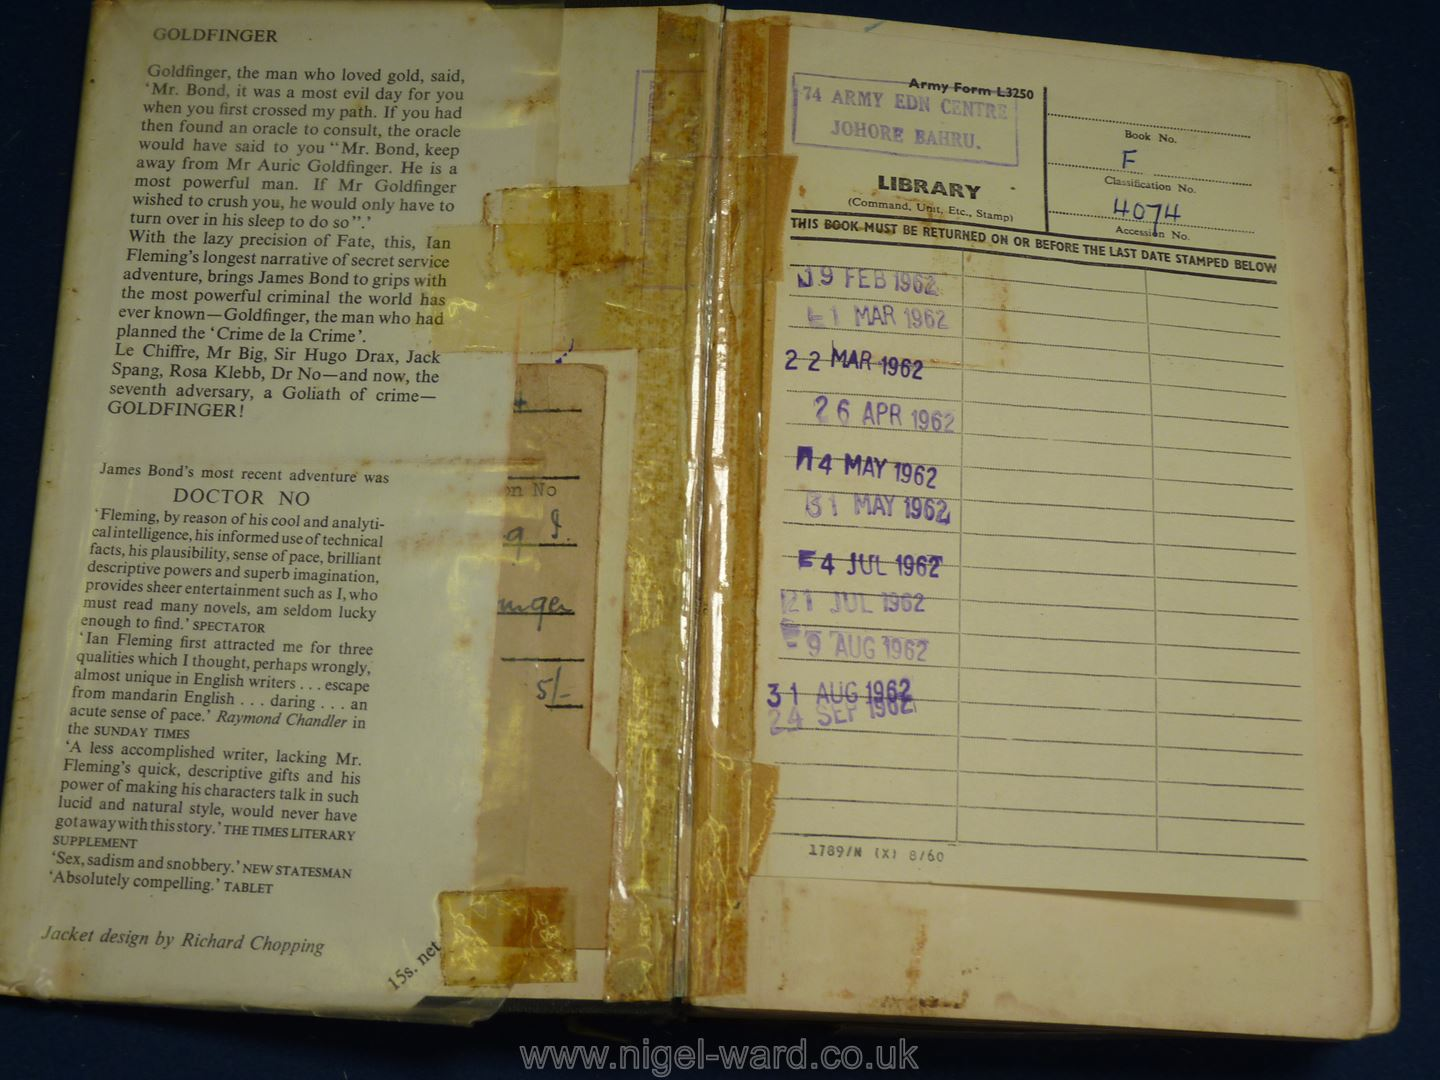 A first edition of 'Goldfinger' by Ian Fleming, Library edition, dust cover worn, loose binding. - Image 2 of 3